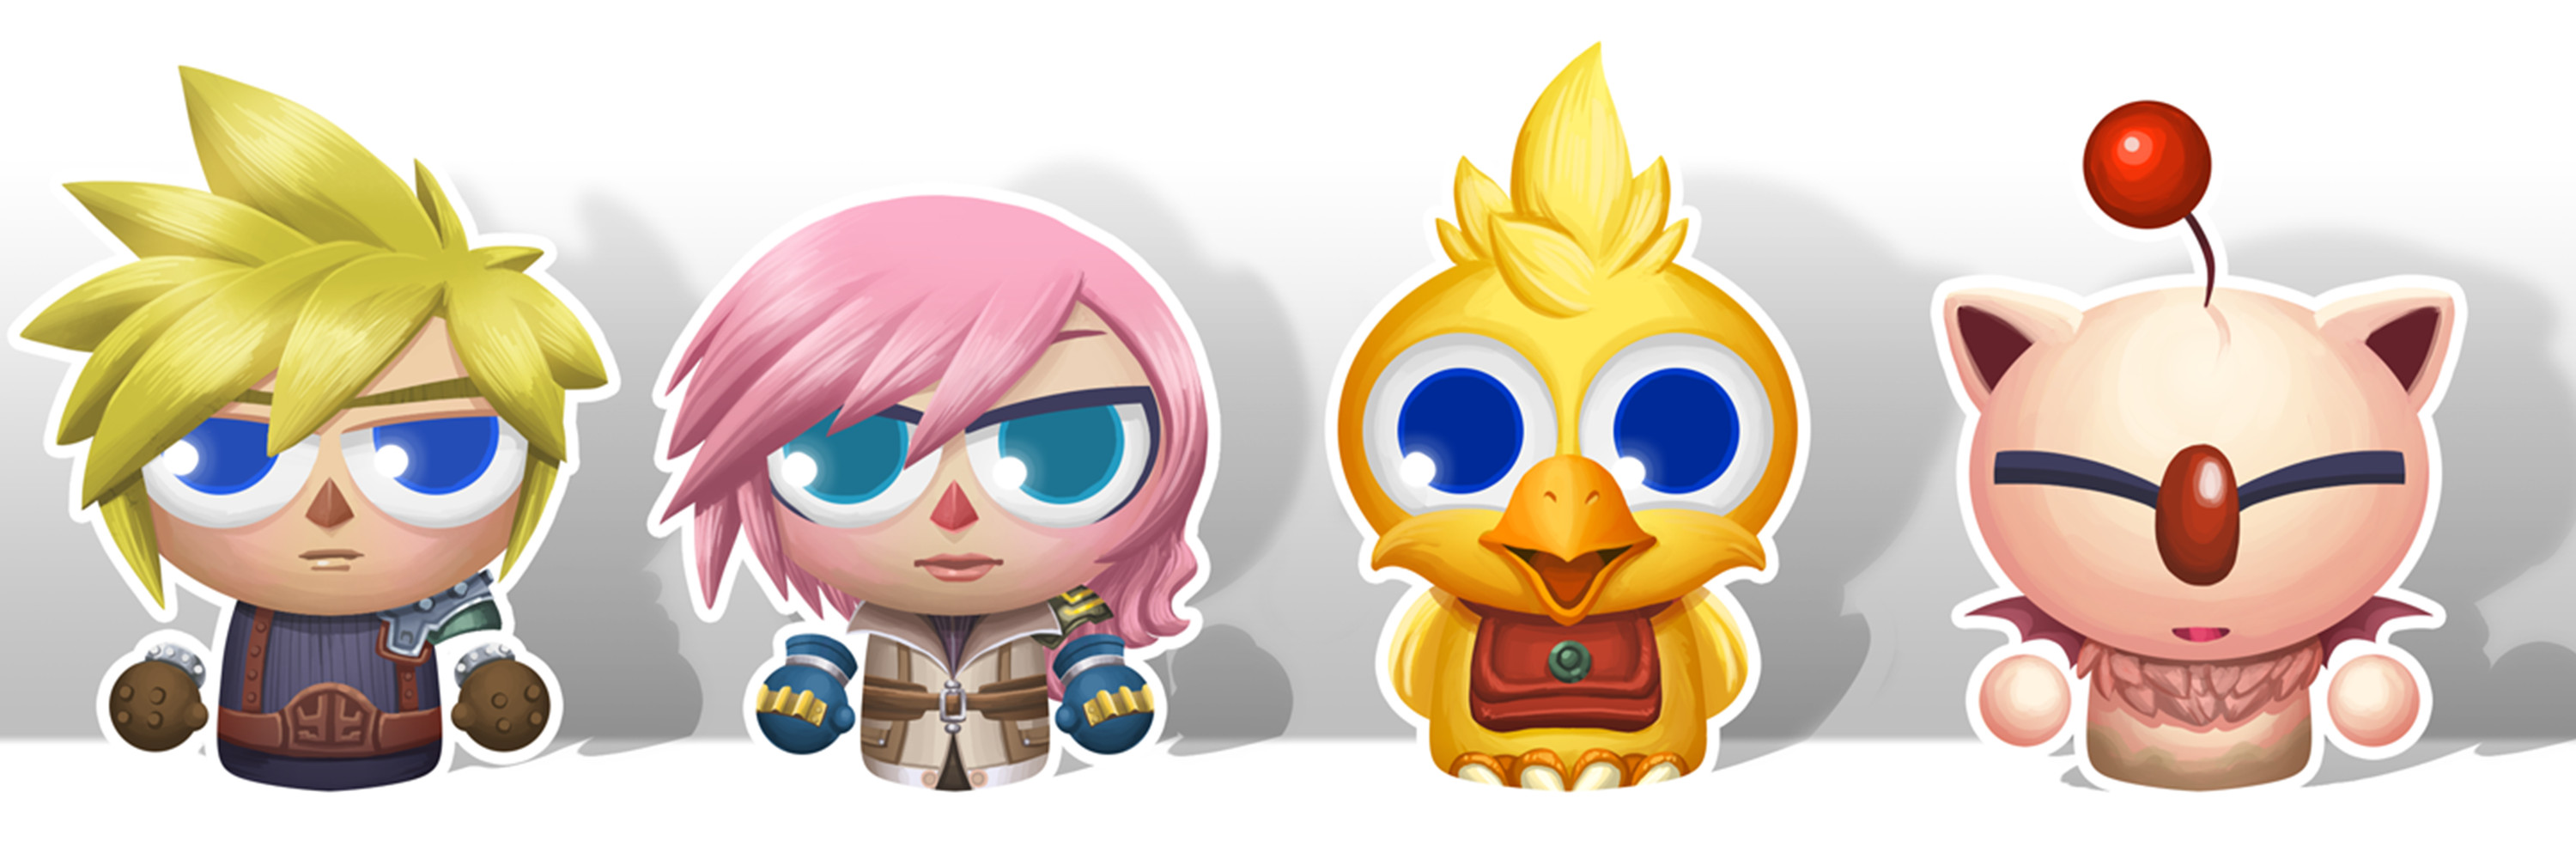 Final Fantasy skin character roll: Cloud, Lightning, Chocobo and a Moogle